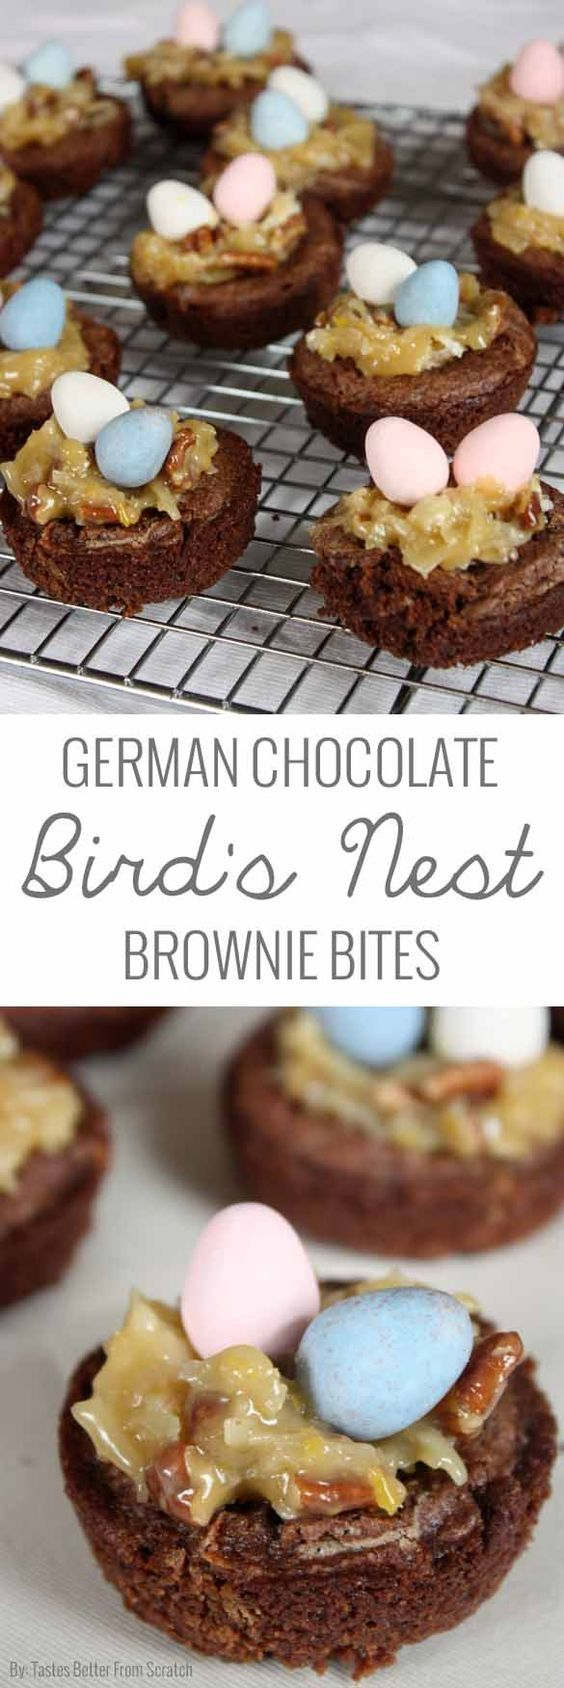 Easter Bird's Nest German Chocolate Brownie Bites Recipe plus 24 more of the most pinned Easter recipes